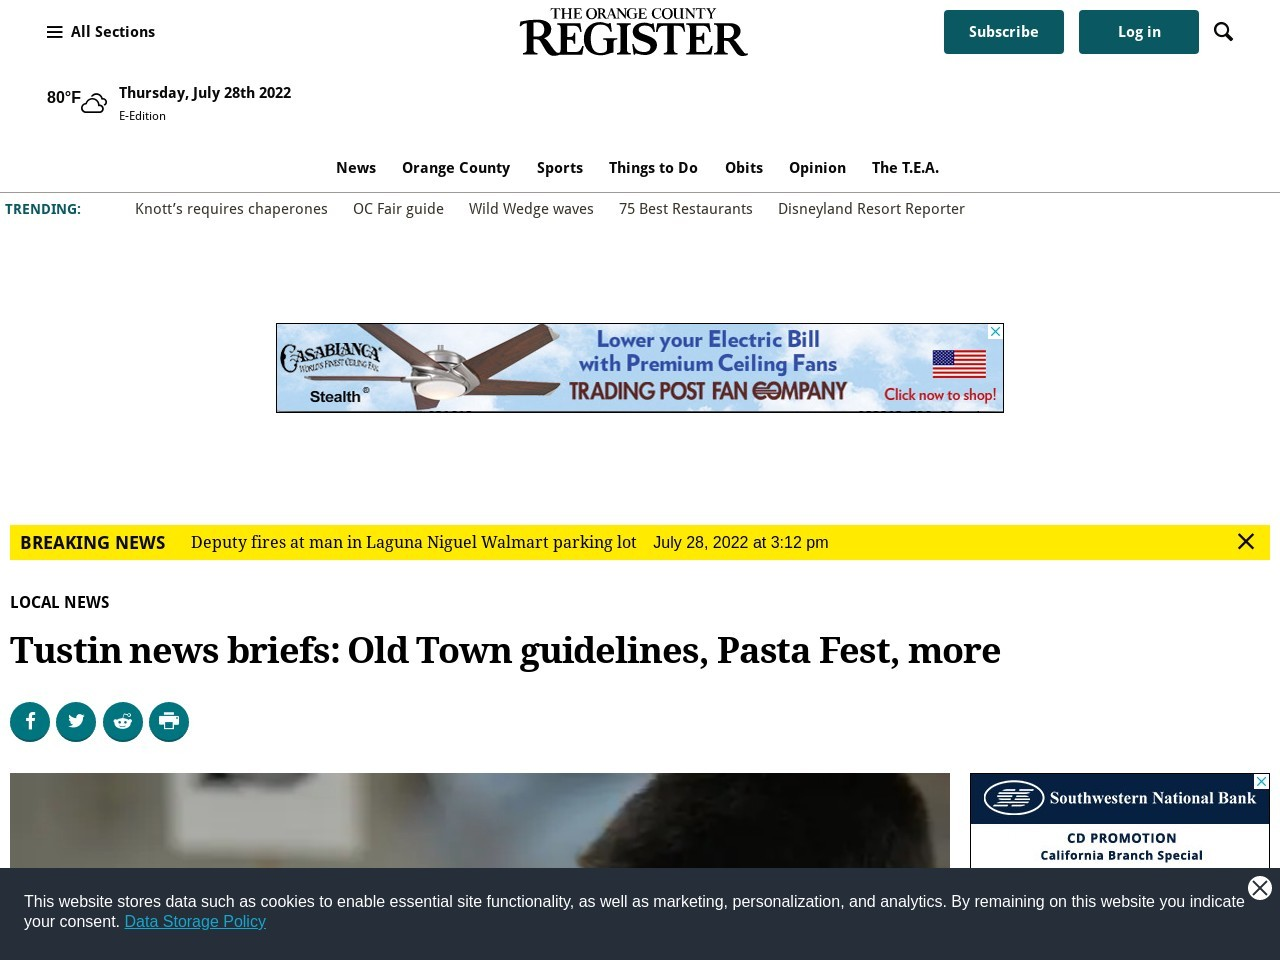 Tustin news briefs: Old Town guidelines, Pasta Fest, more